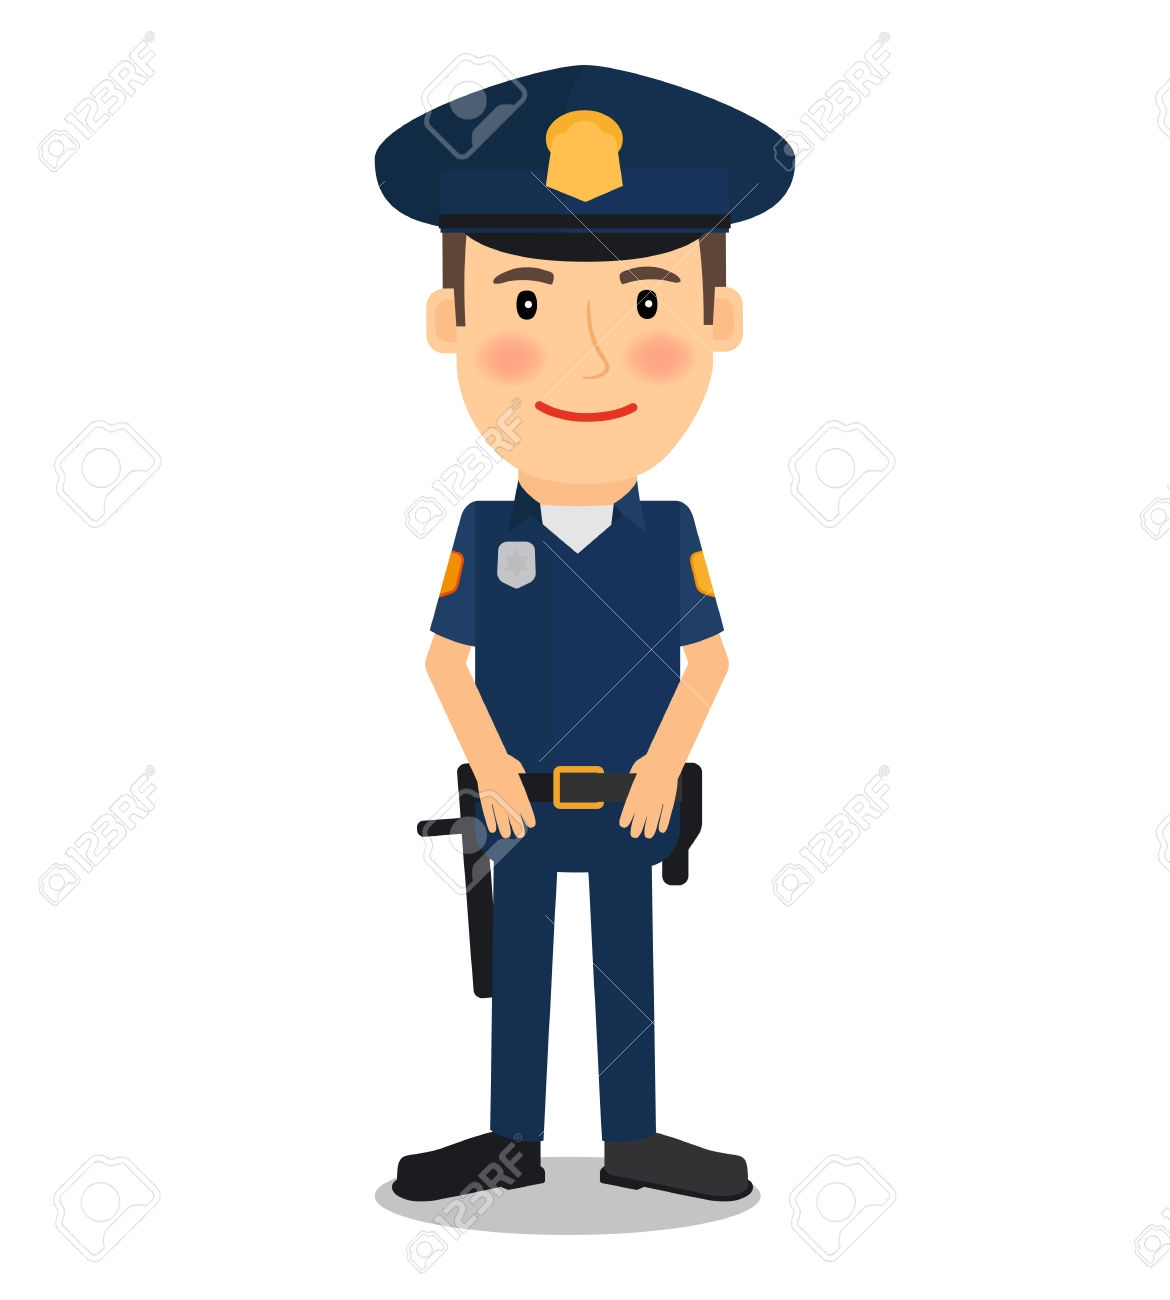 Policeman clipart Best of Cop clipart police officer Pencil and in.